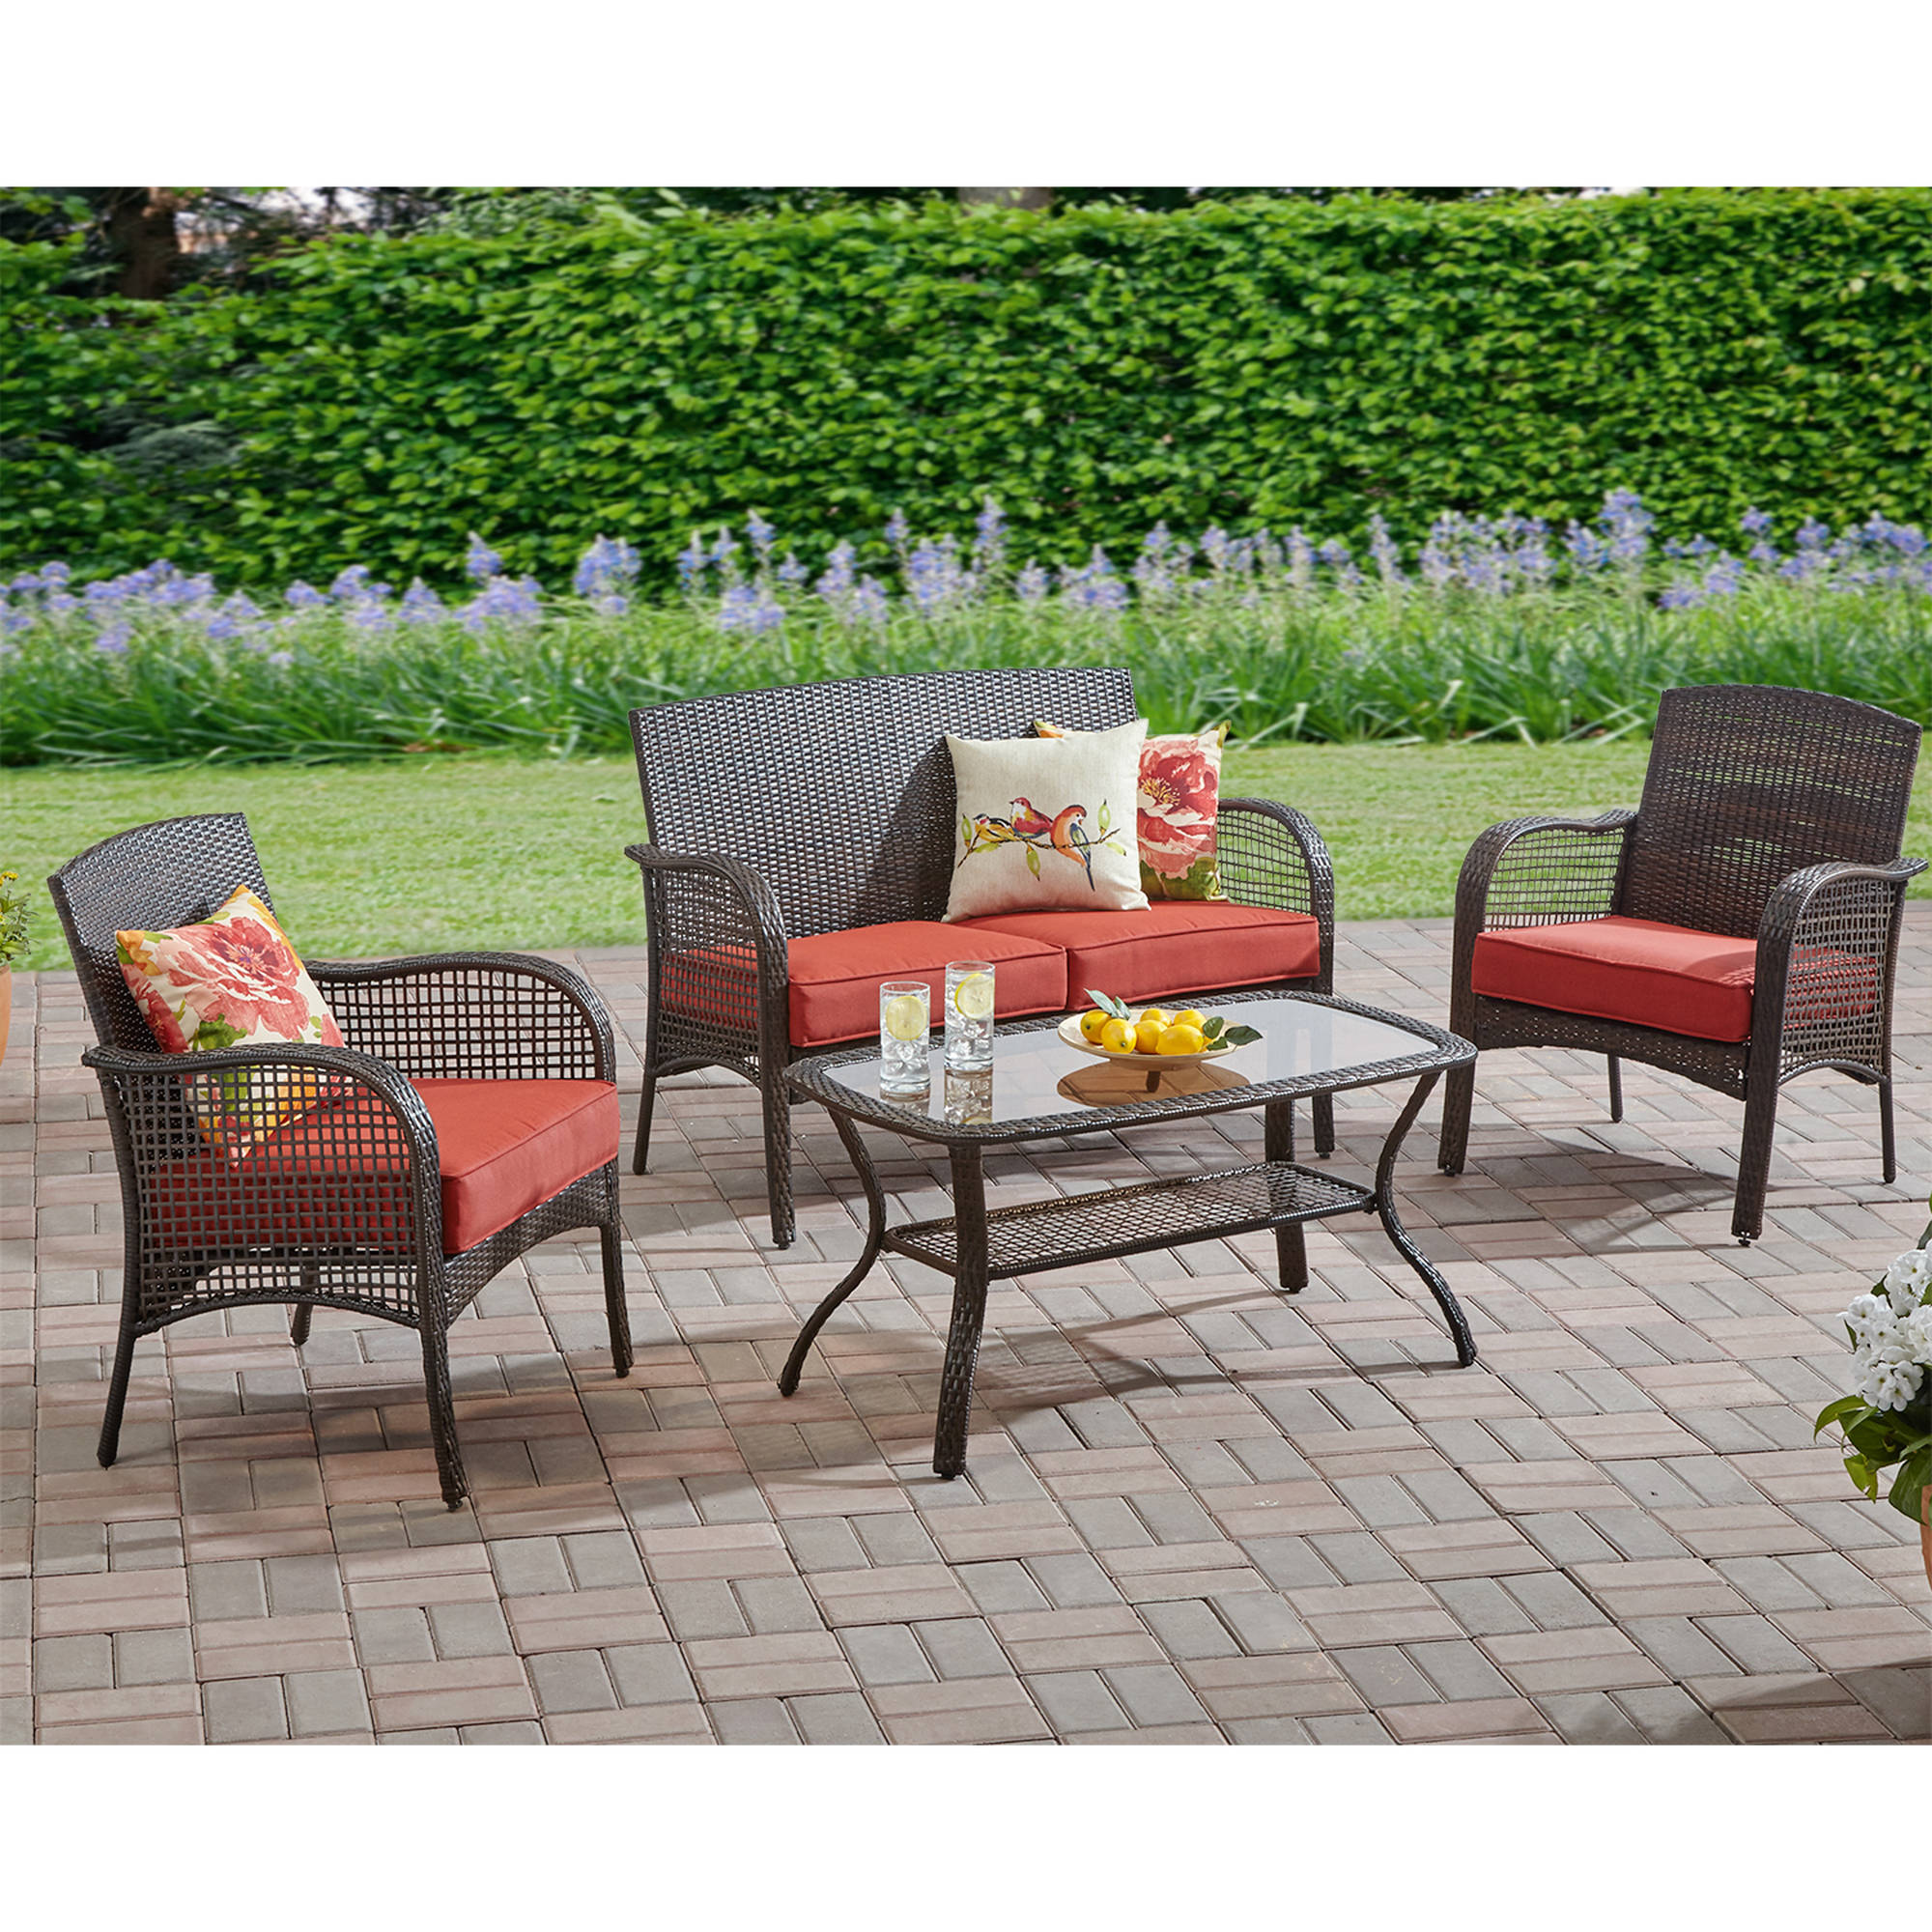 mainstays cambridge park 4 outdoor conversation set